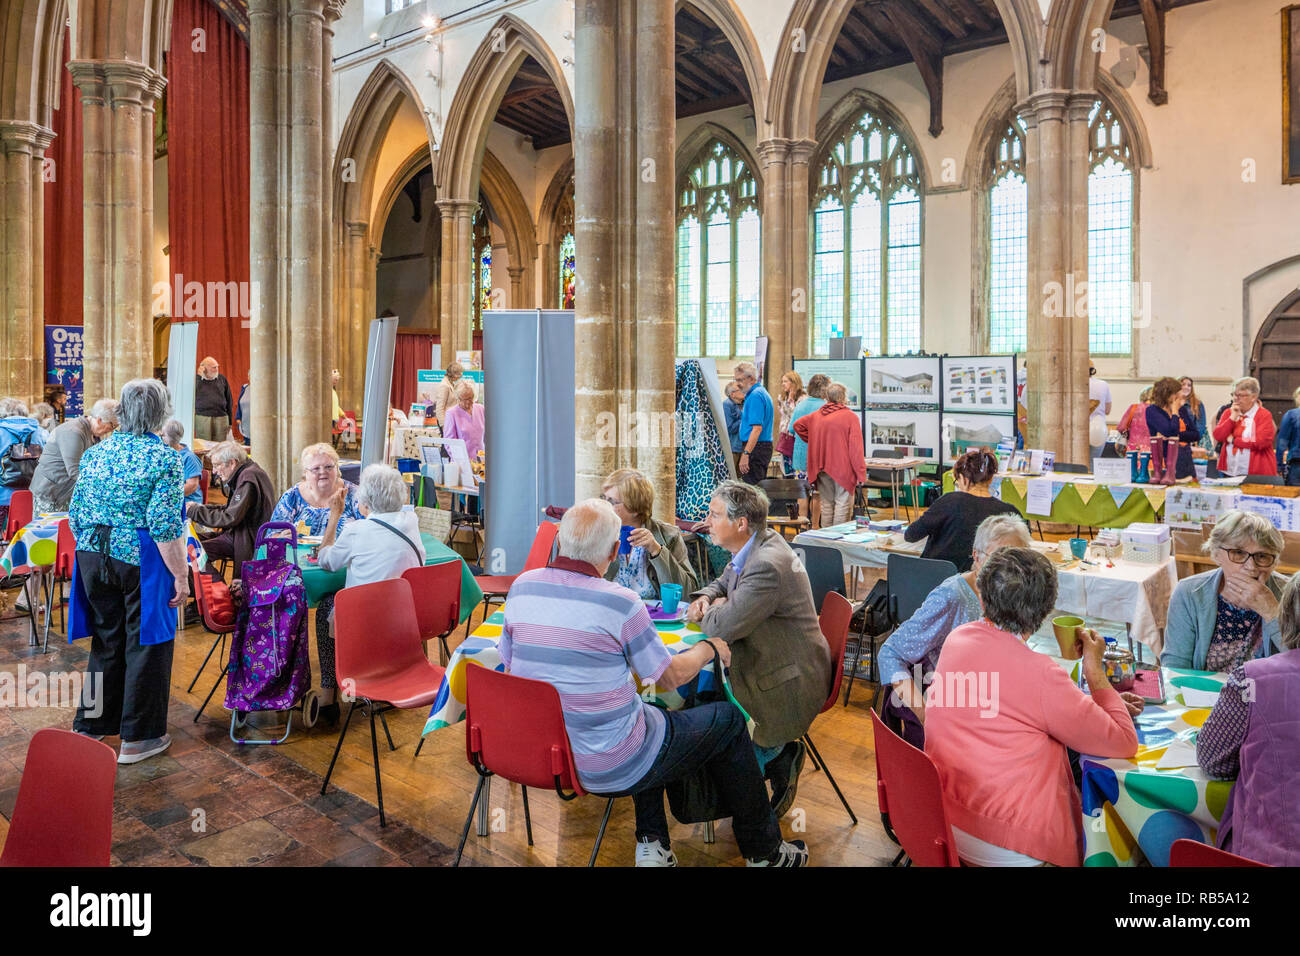 St Peters church in the market place in Sudbury, Suffolk UK being used for a community event on market day. - Stock Image